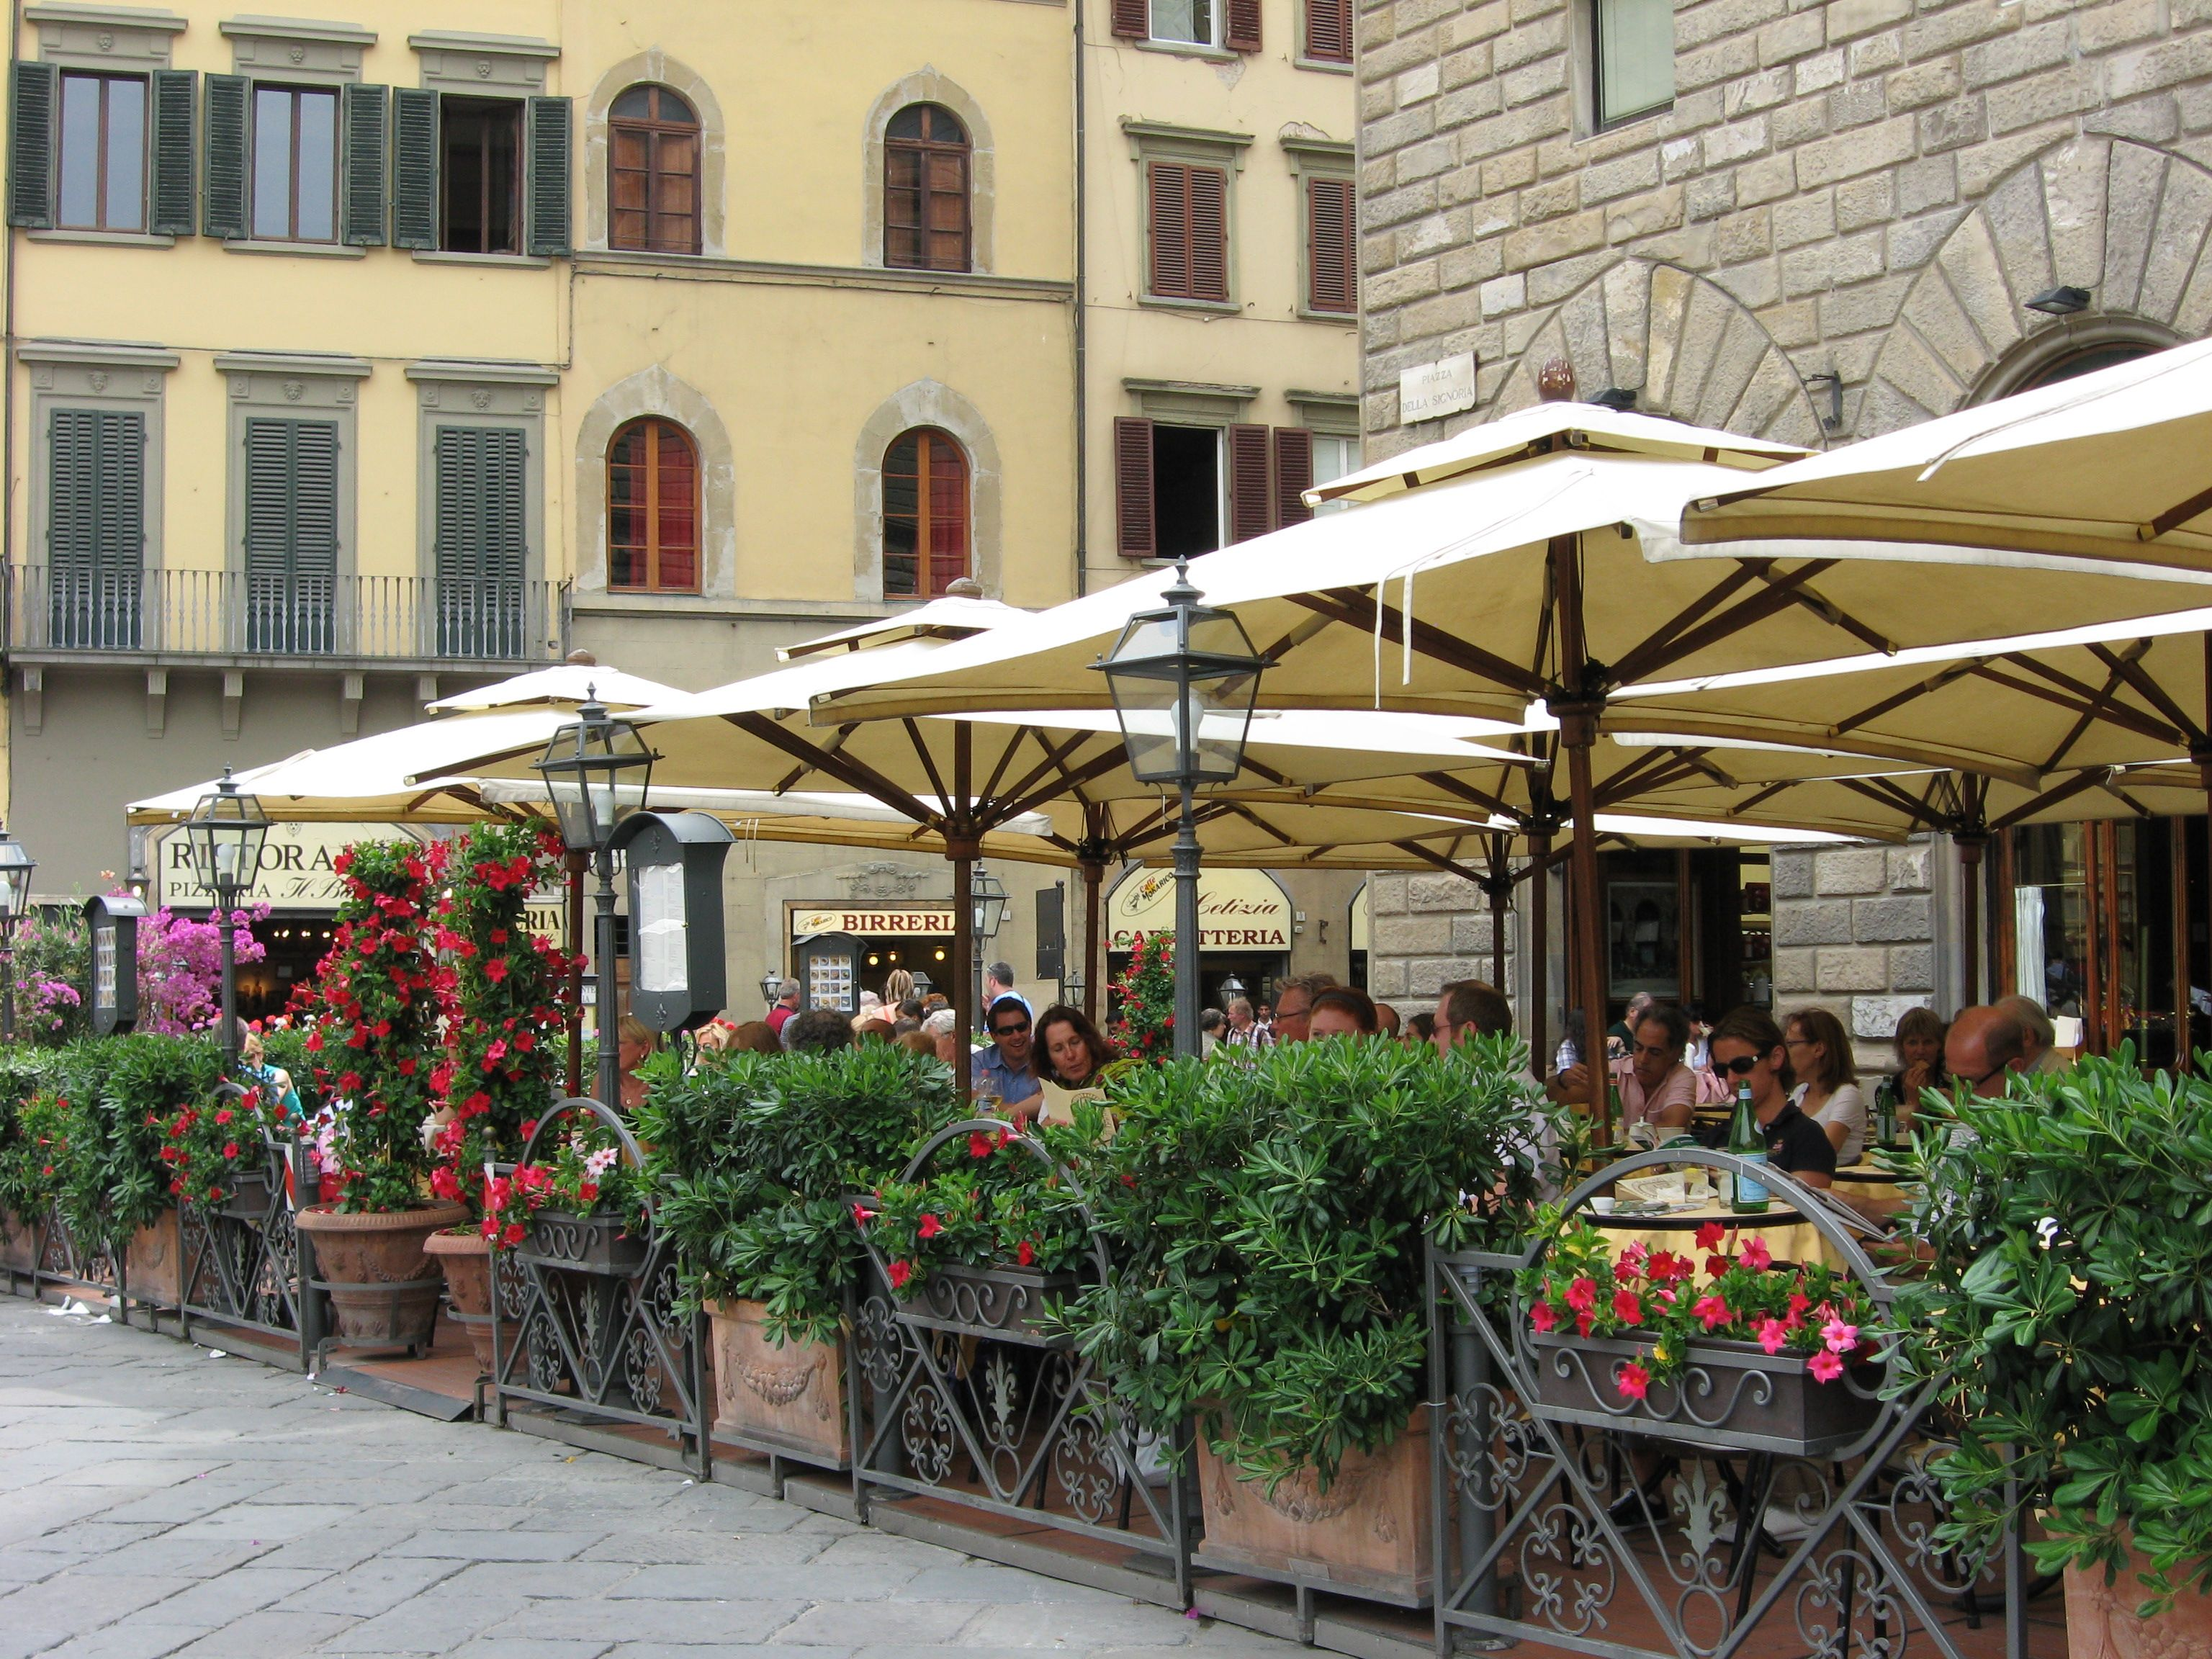 Sidewalk 'cafe' in Florence, Italy